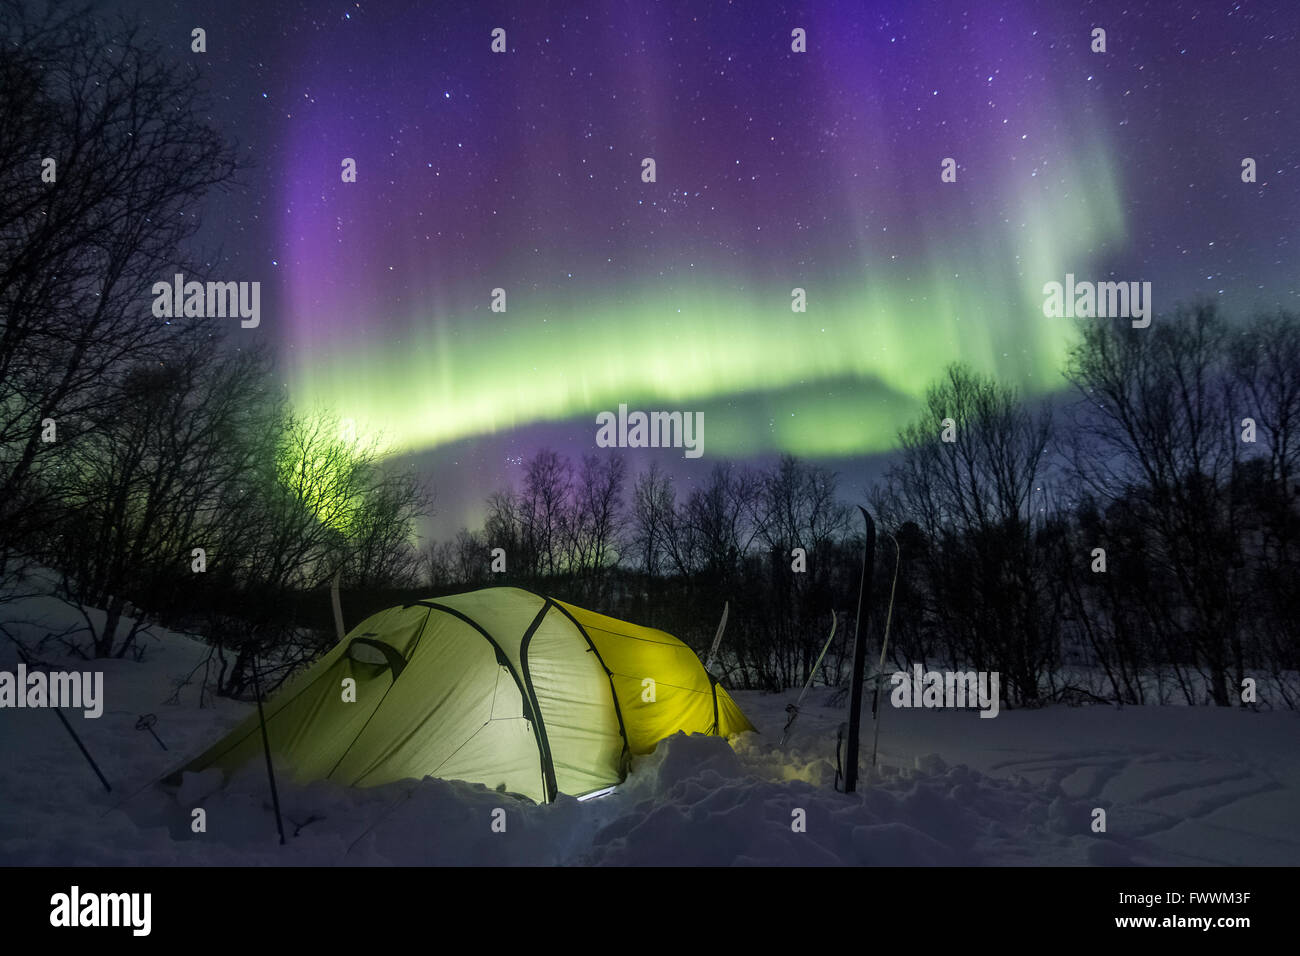 Tenting under the auroras - Stock Image